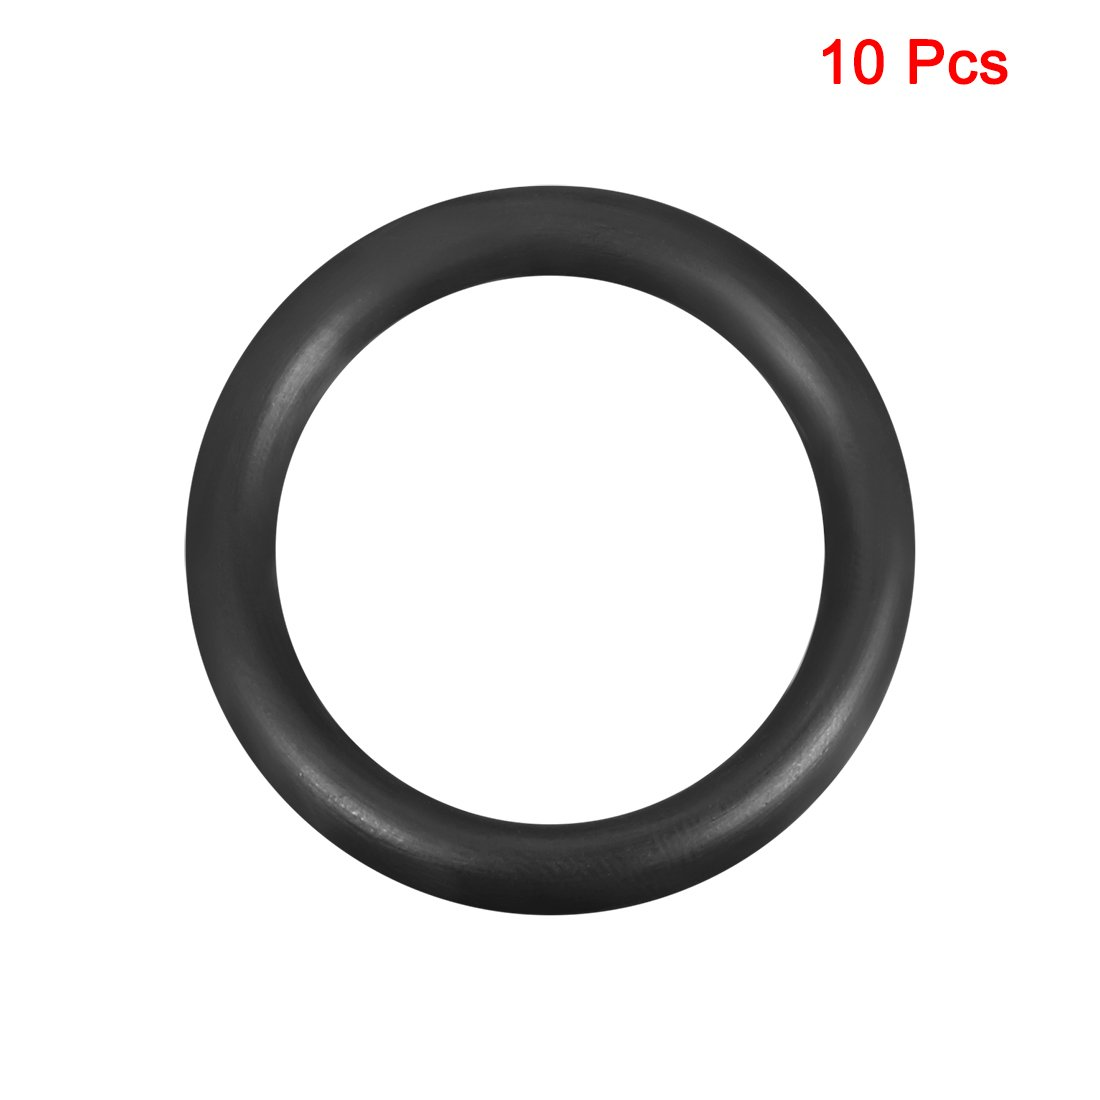 uxcell O-Ringe Nitril Gummi 5/ mm Seal Ring Dichtung 20mmx30mmx5mm